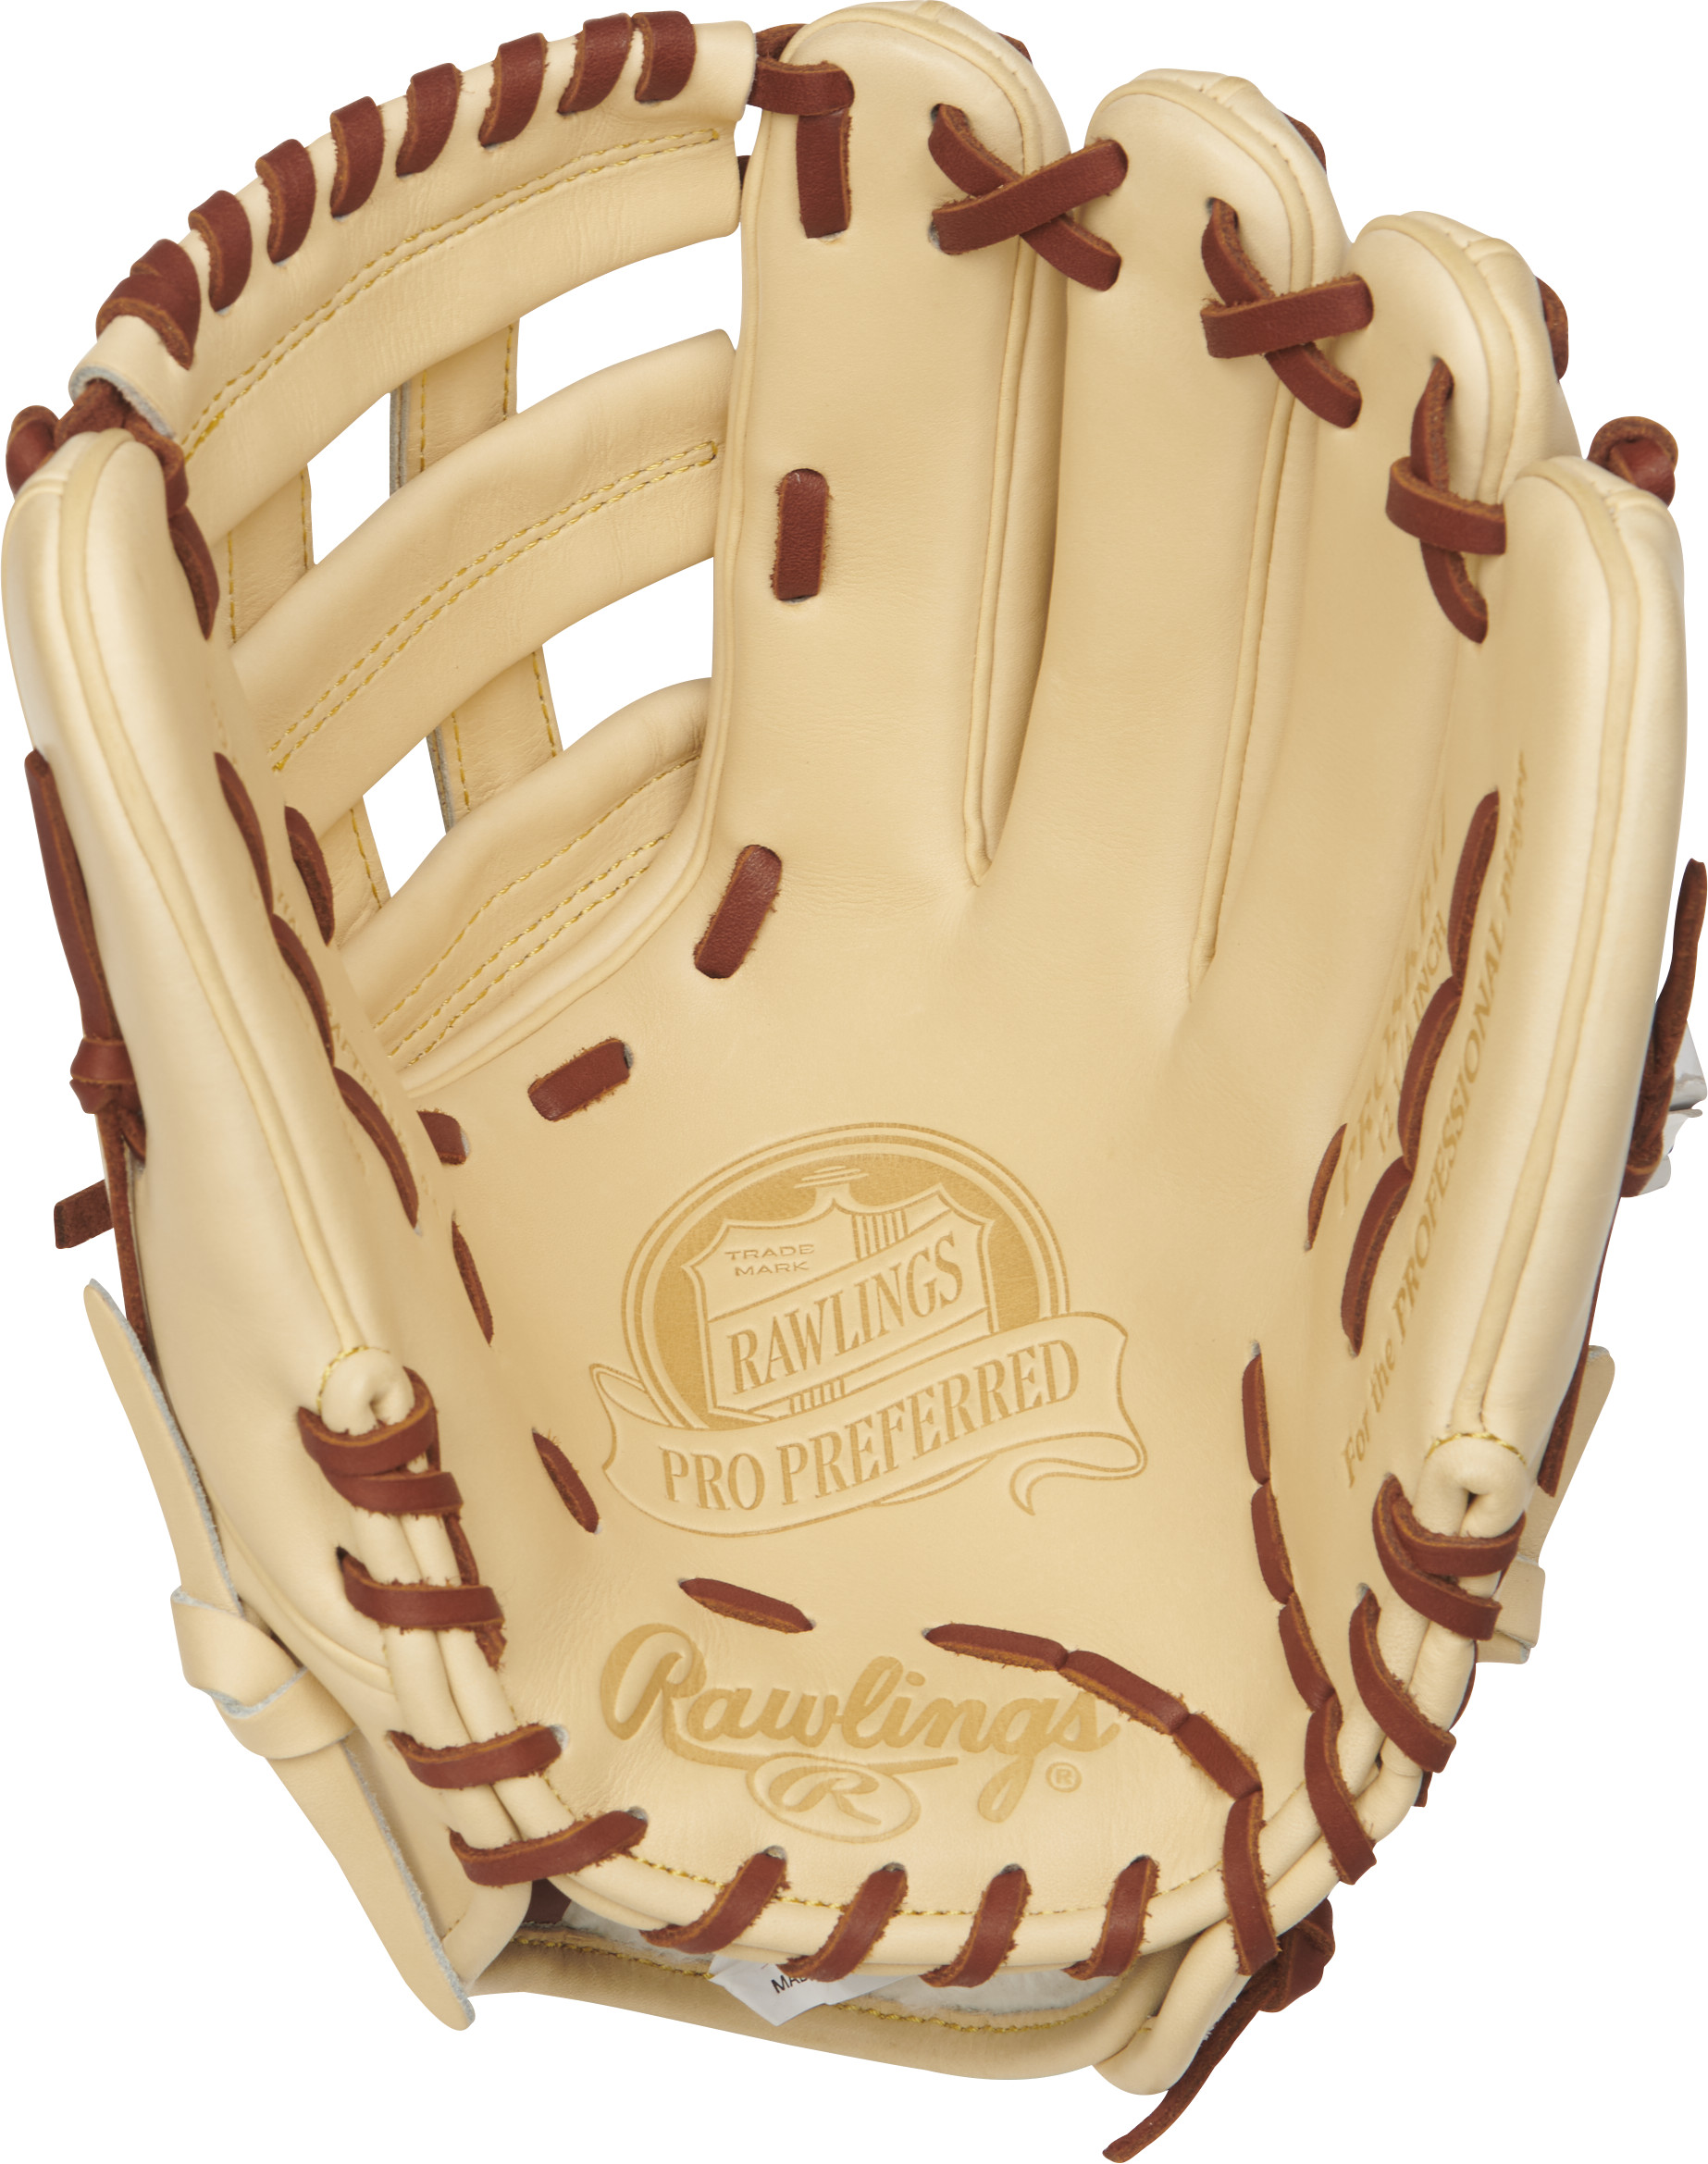 http://www.bestbatdeals.com/images/gloves/rawlings/PROSKB17-1.jpg